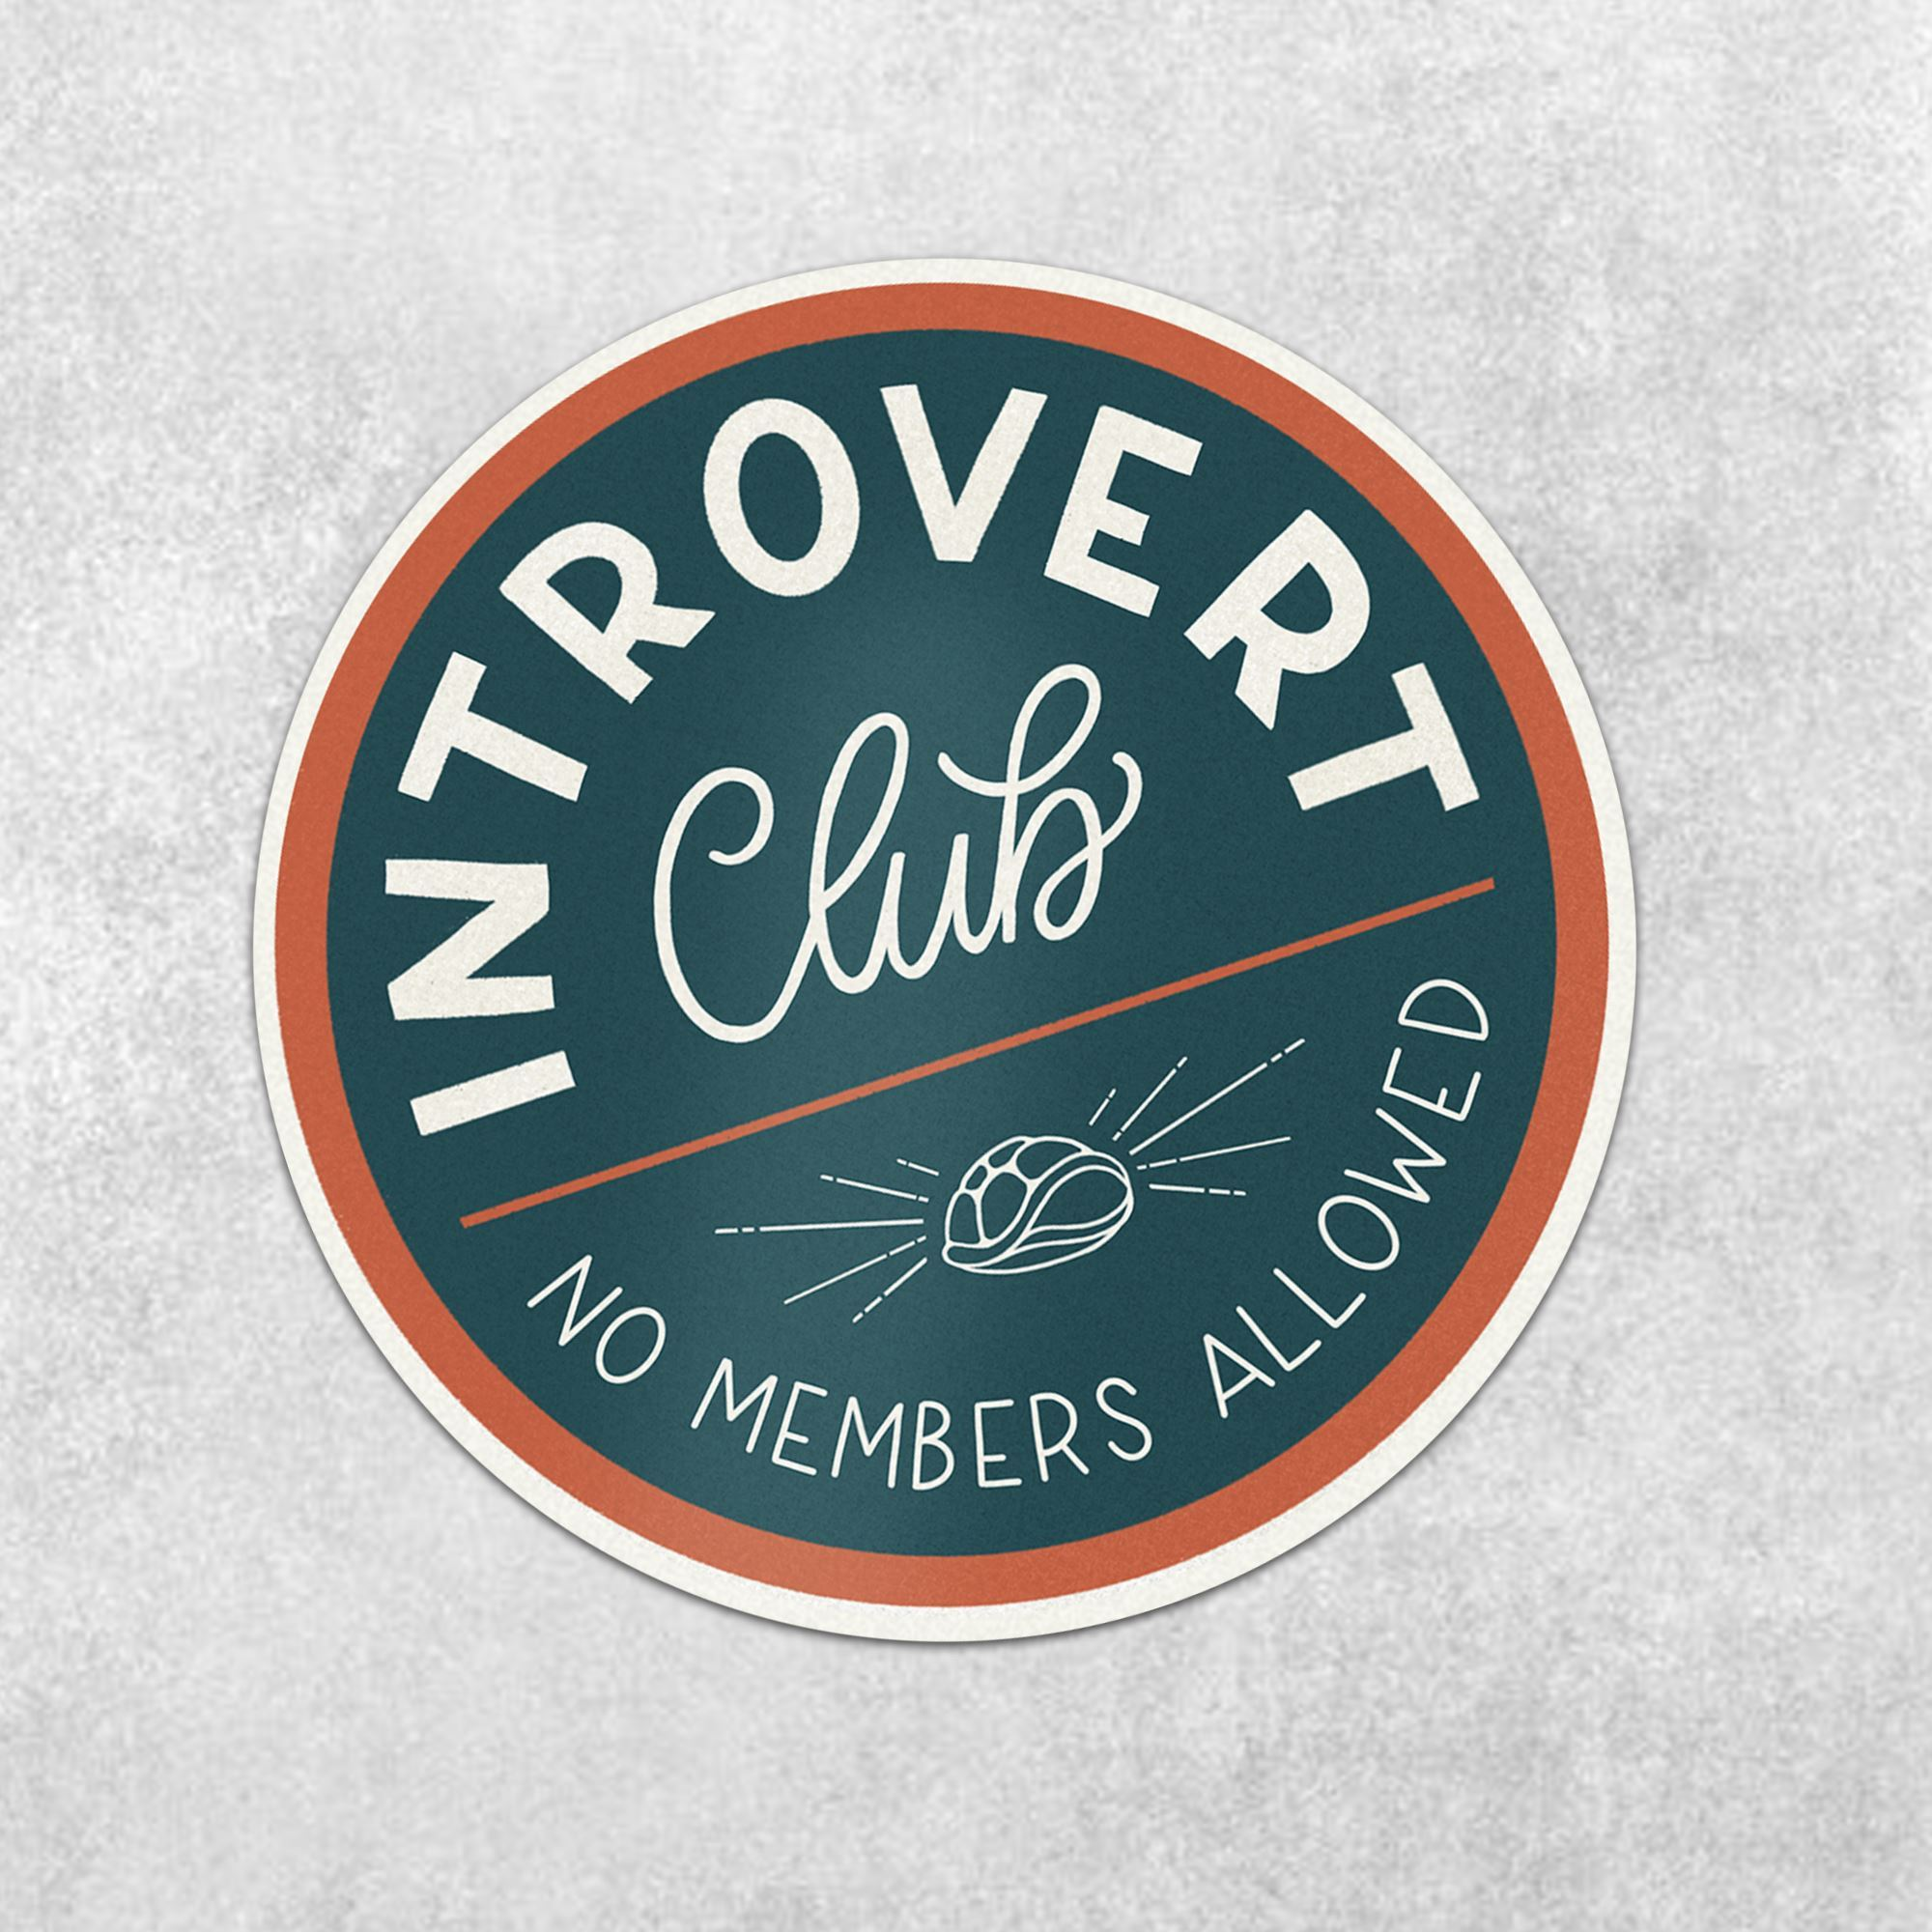 Introvert Club (No Members Allowed) - Amber Share Design-Default Title--